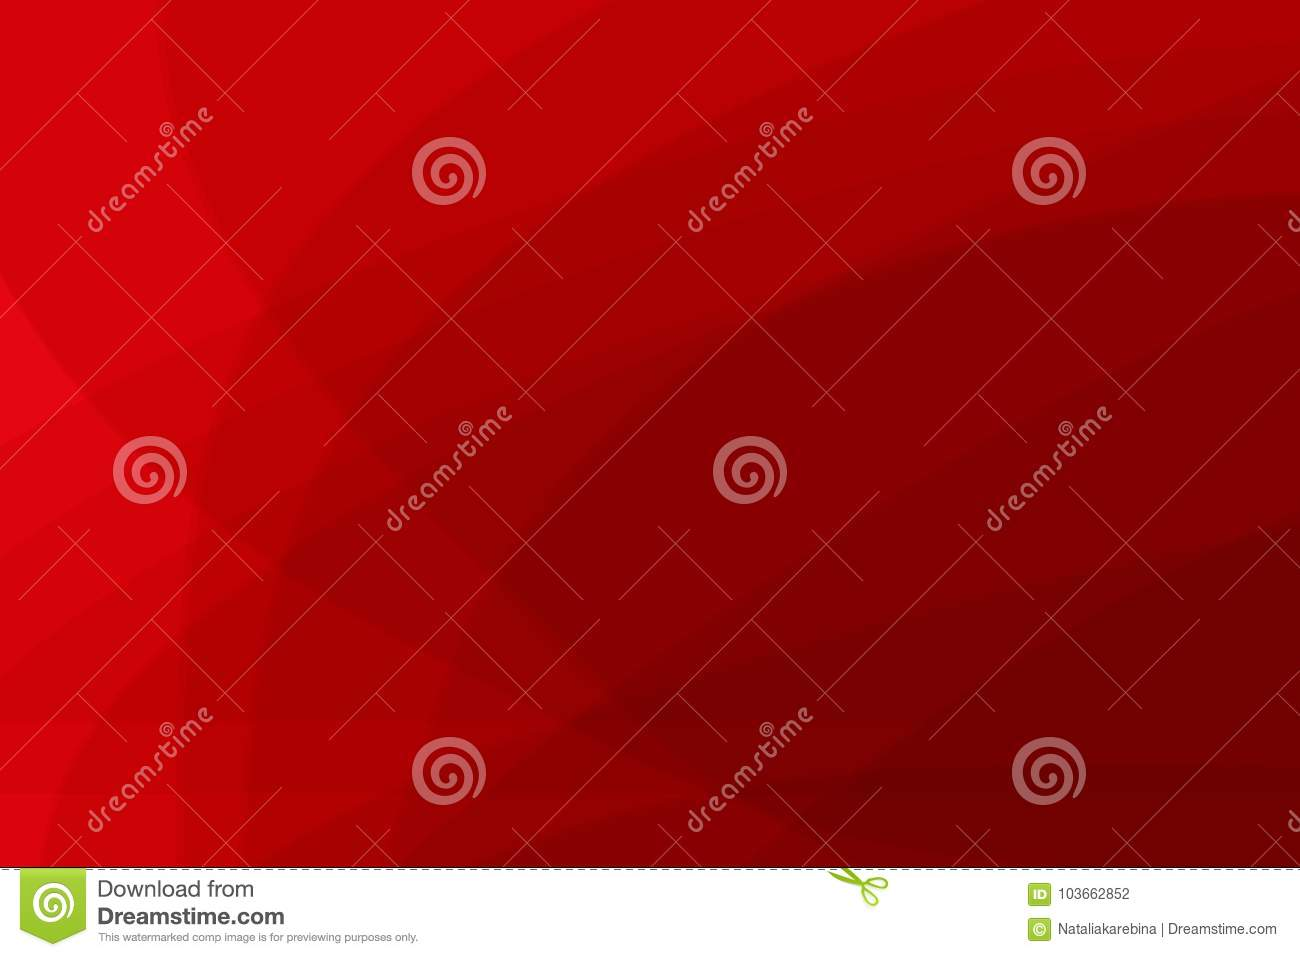 Abstract red horizontal background. Elegant design. Vector